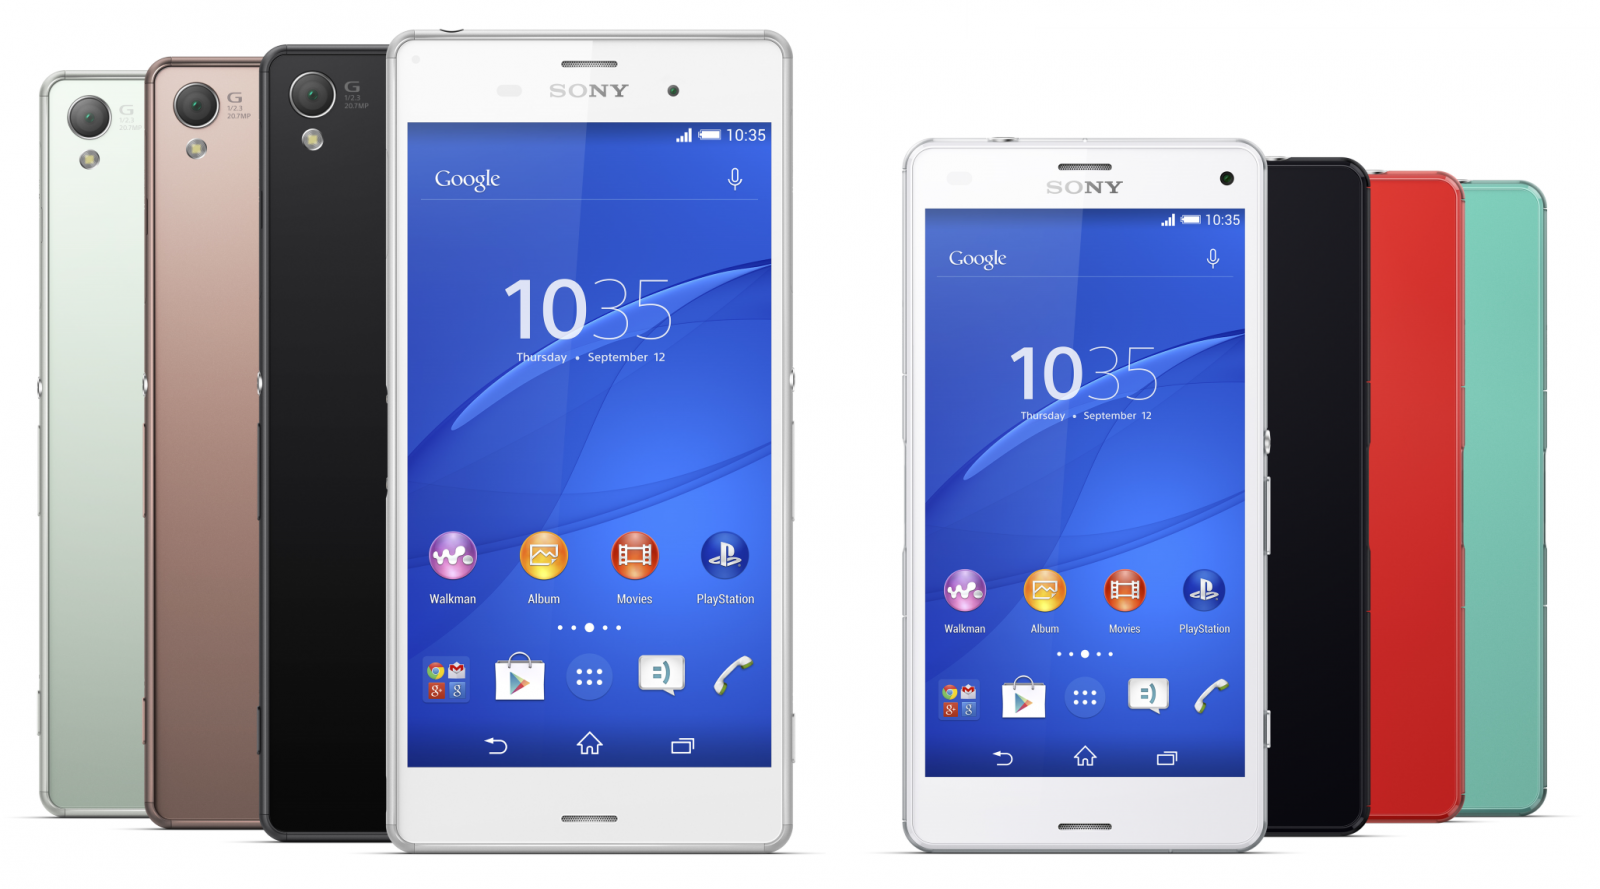 How to root Xperia Z3 and Z3 Compact with locked bootloaders